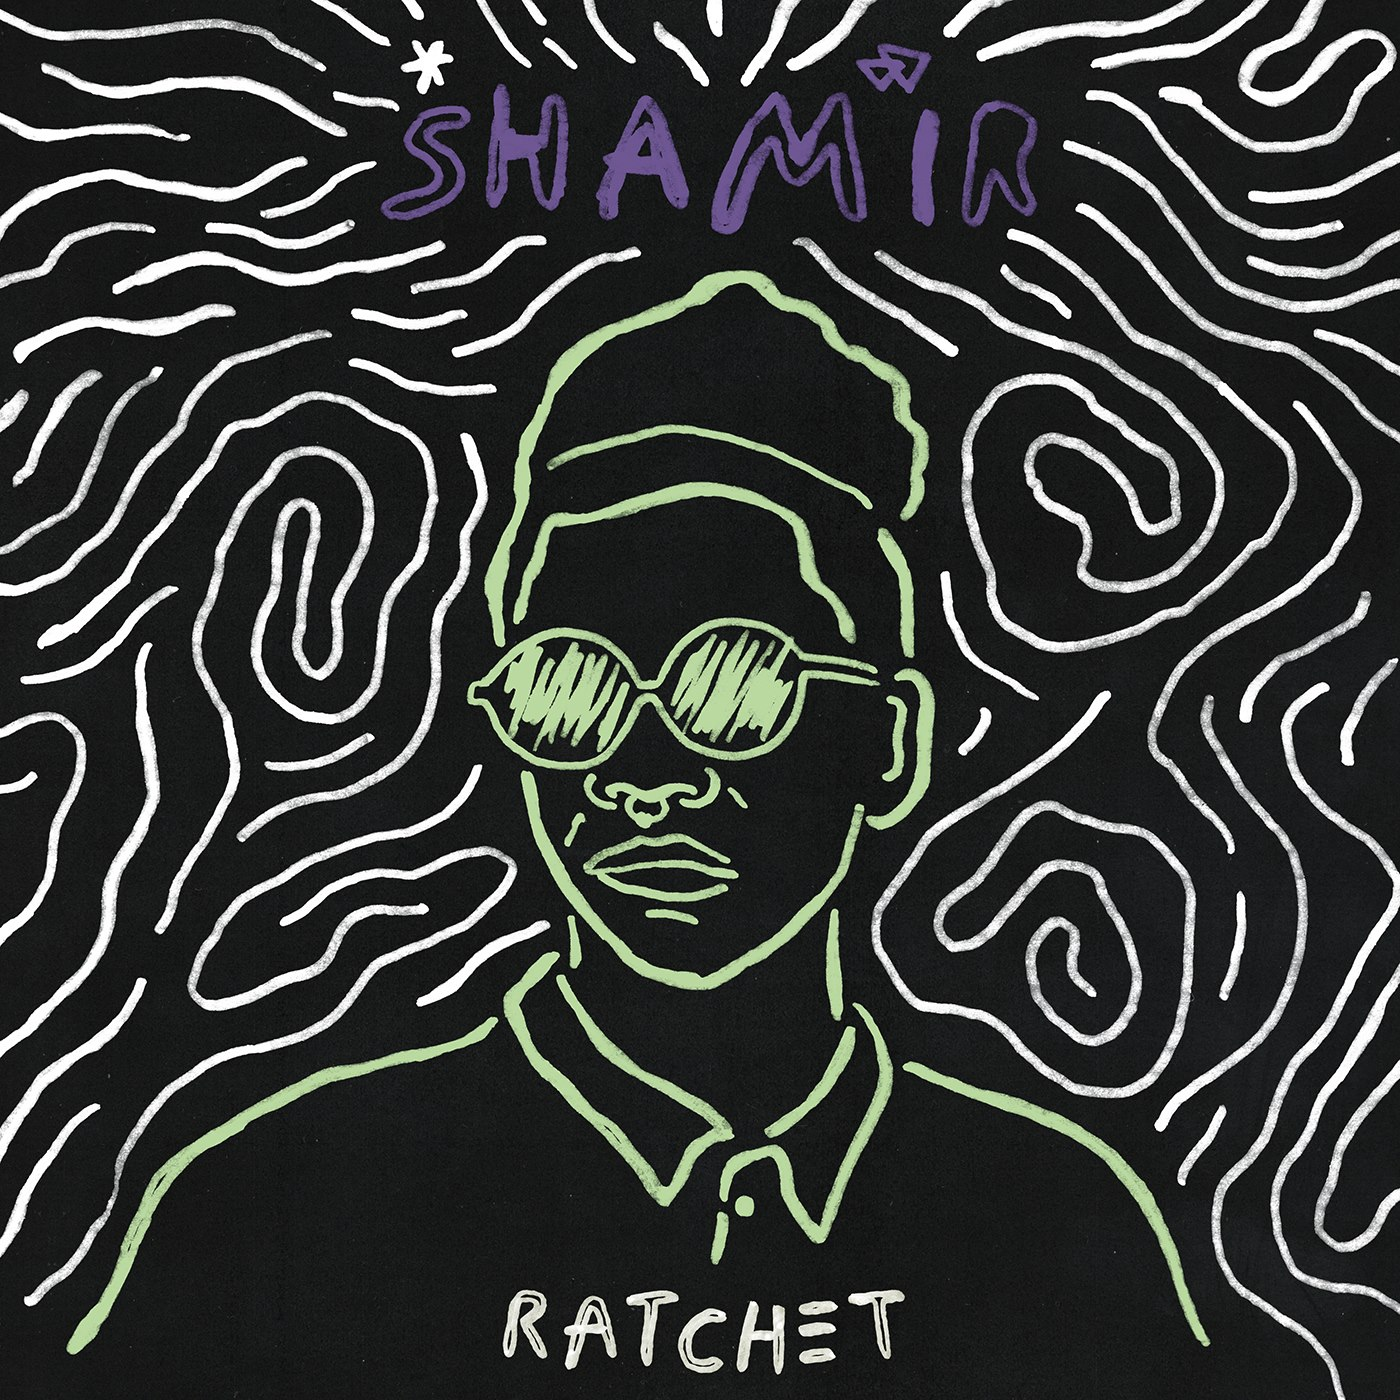 Shamir - Ratchet album - XL